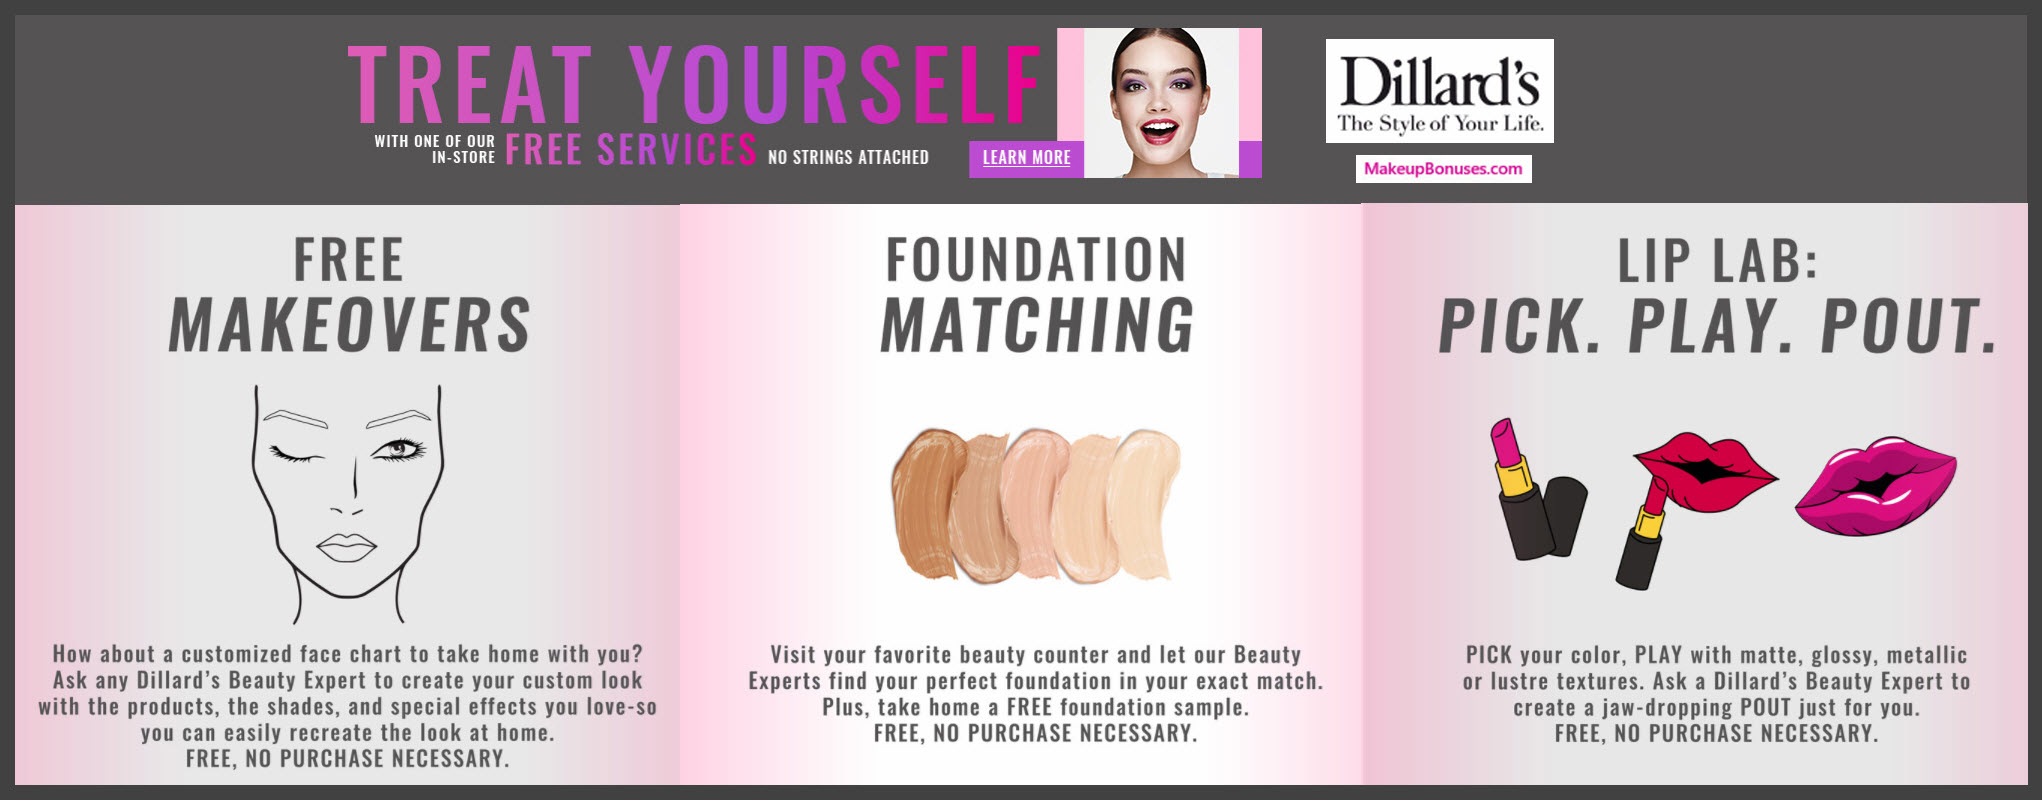 Dillard's Free Beauty Services - MakeupBonuses.com